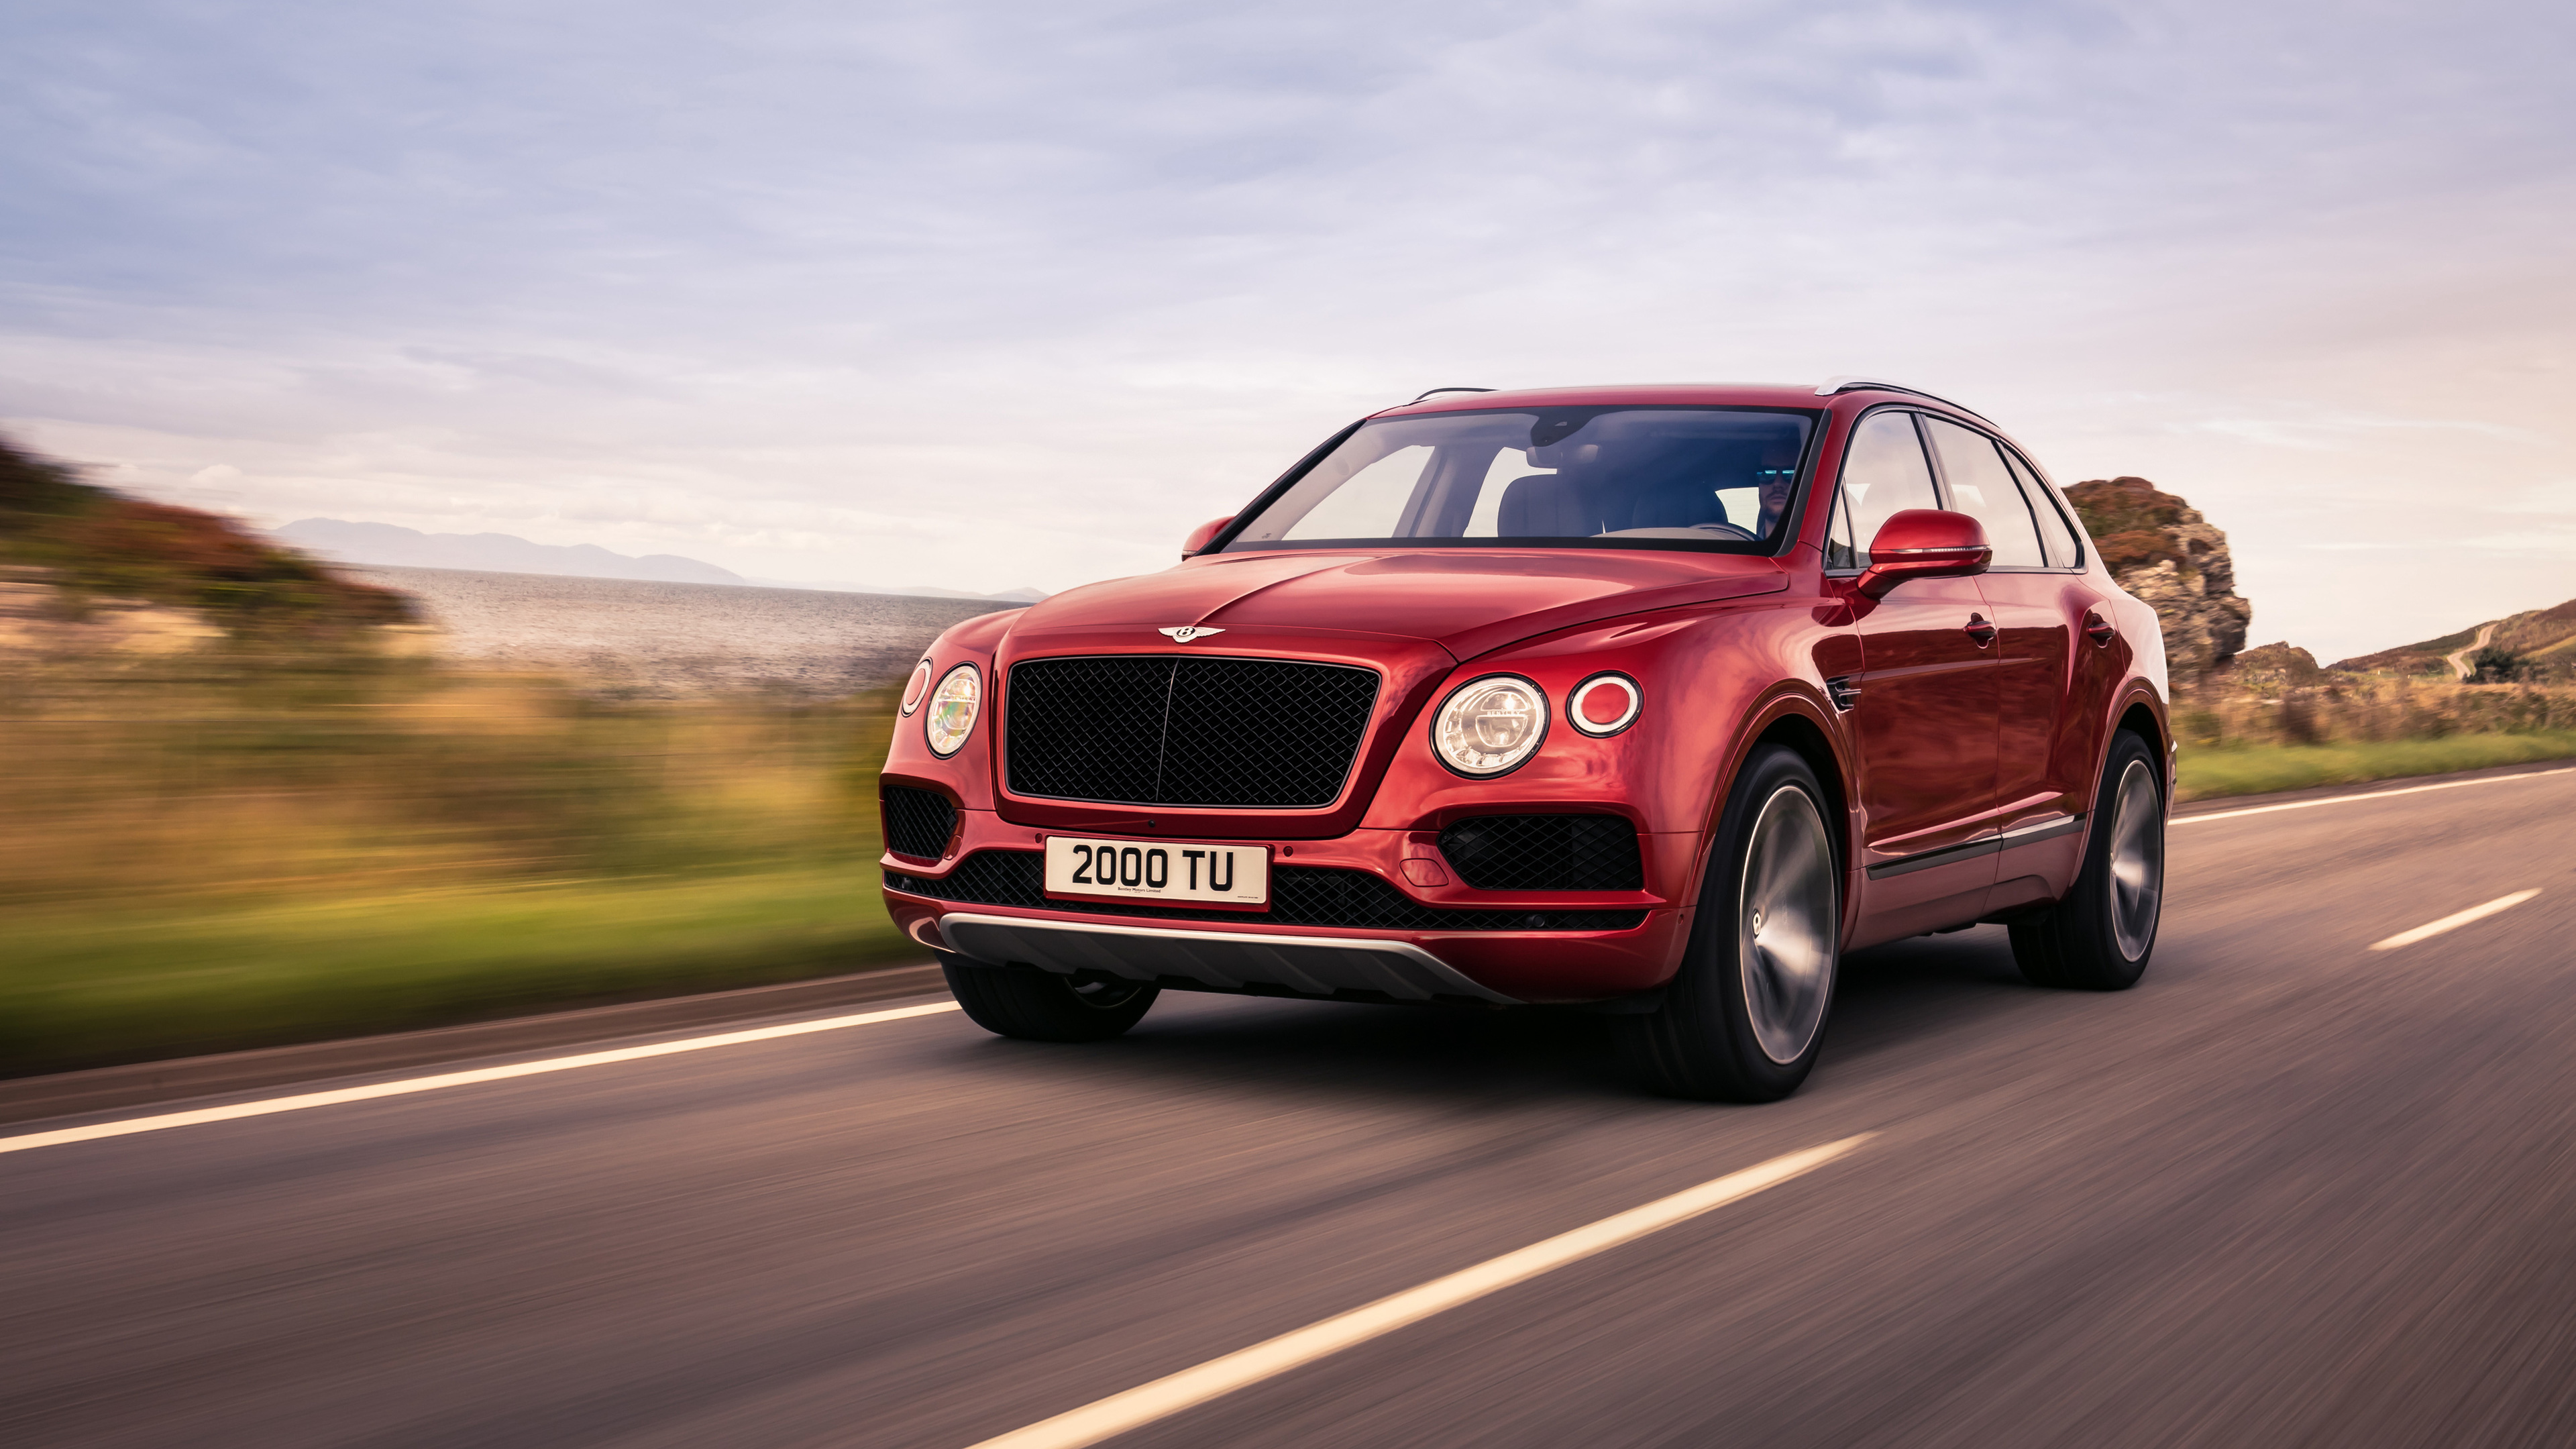 2018 bentley bentayga v8 1539109128 - 2018 Bentley Bentayga V8 - hd-wallpapers, cars wallpapers, bentley wallpapers, bentley bentayga wallpapers, 4k-wallpapers, 2018 cars wallpapers